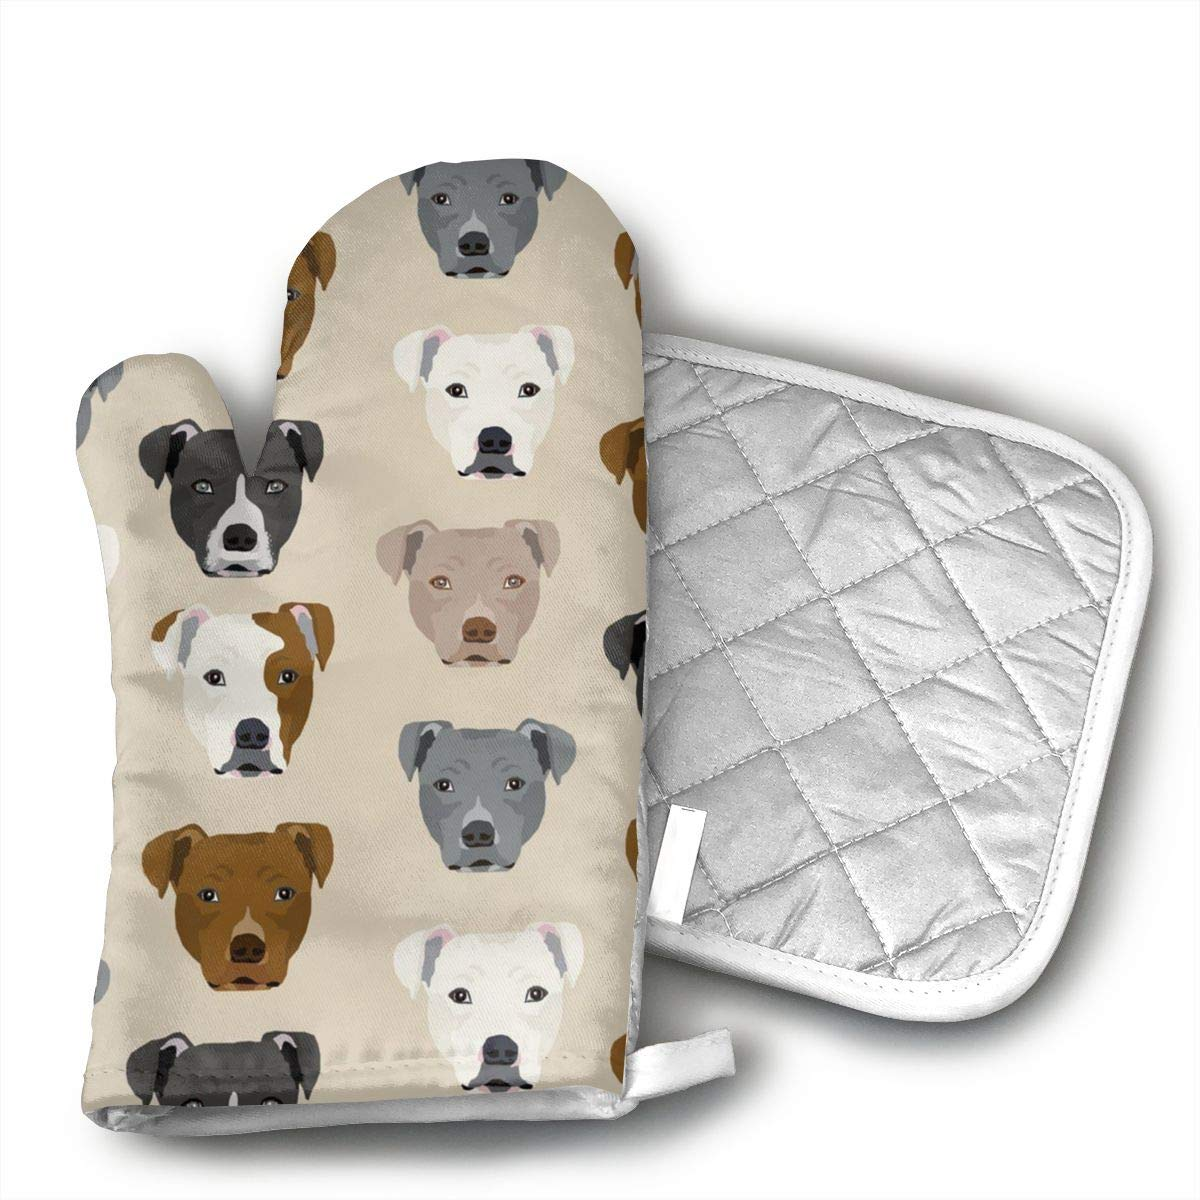 Sjiwqoj8 Pitbull Heads Kitchen Oven Mitts,Oven Mitts and Pot Holders,Heat Resistant with Quilted Cotton Lining,Cooking,Baking,Grilling,Barbecue